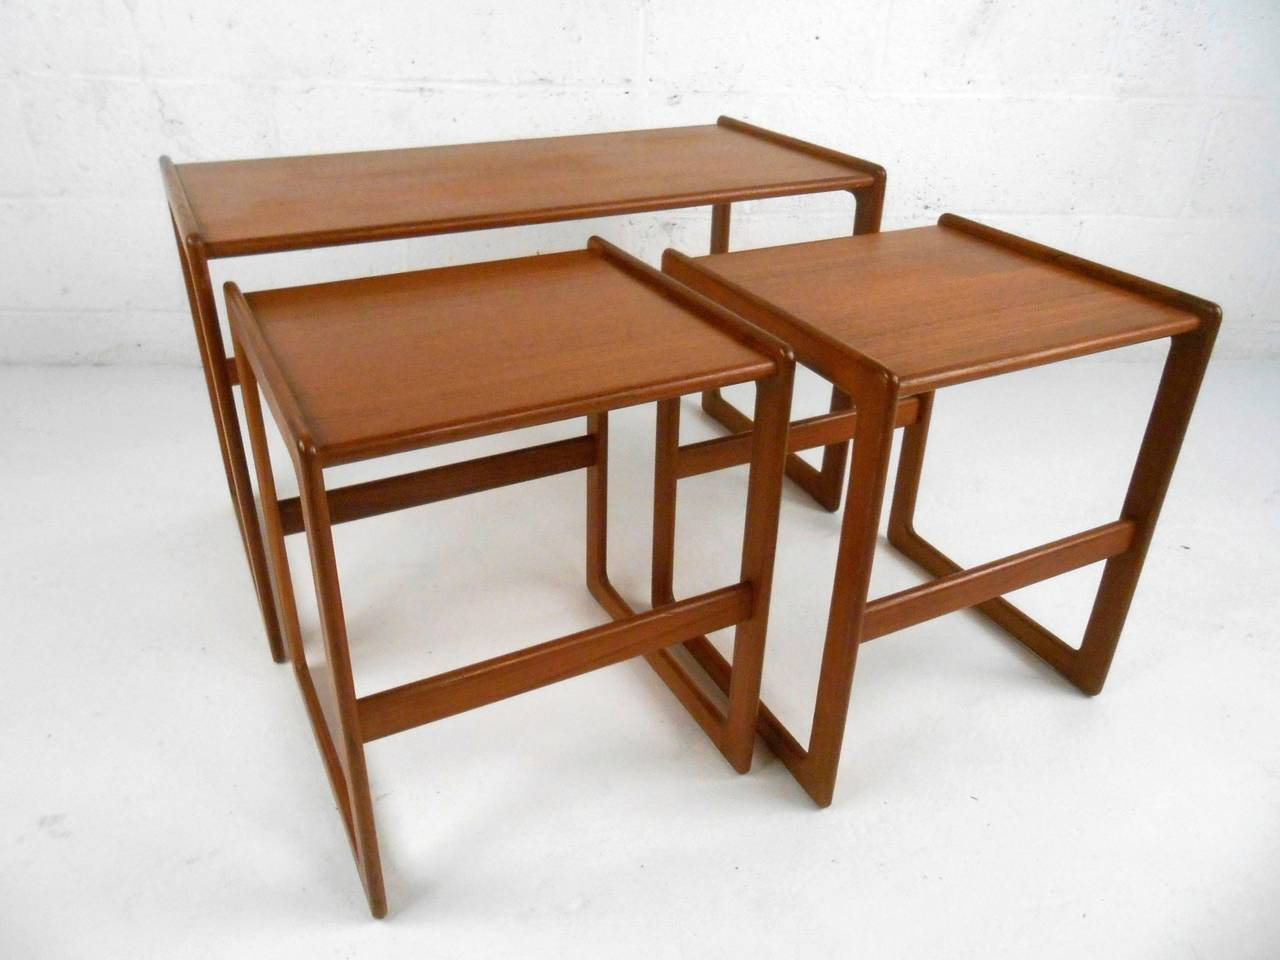 Ordinaire This Well Crafted Set Of Three Teak Side Tables Uniquely Nest Together.  Sturdy Construction With. Set Of Mid Century ...